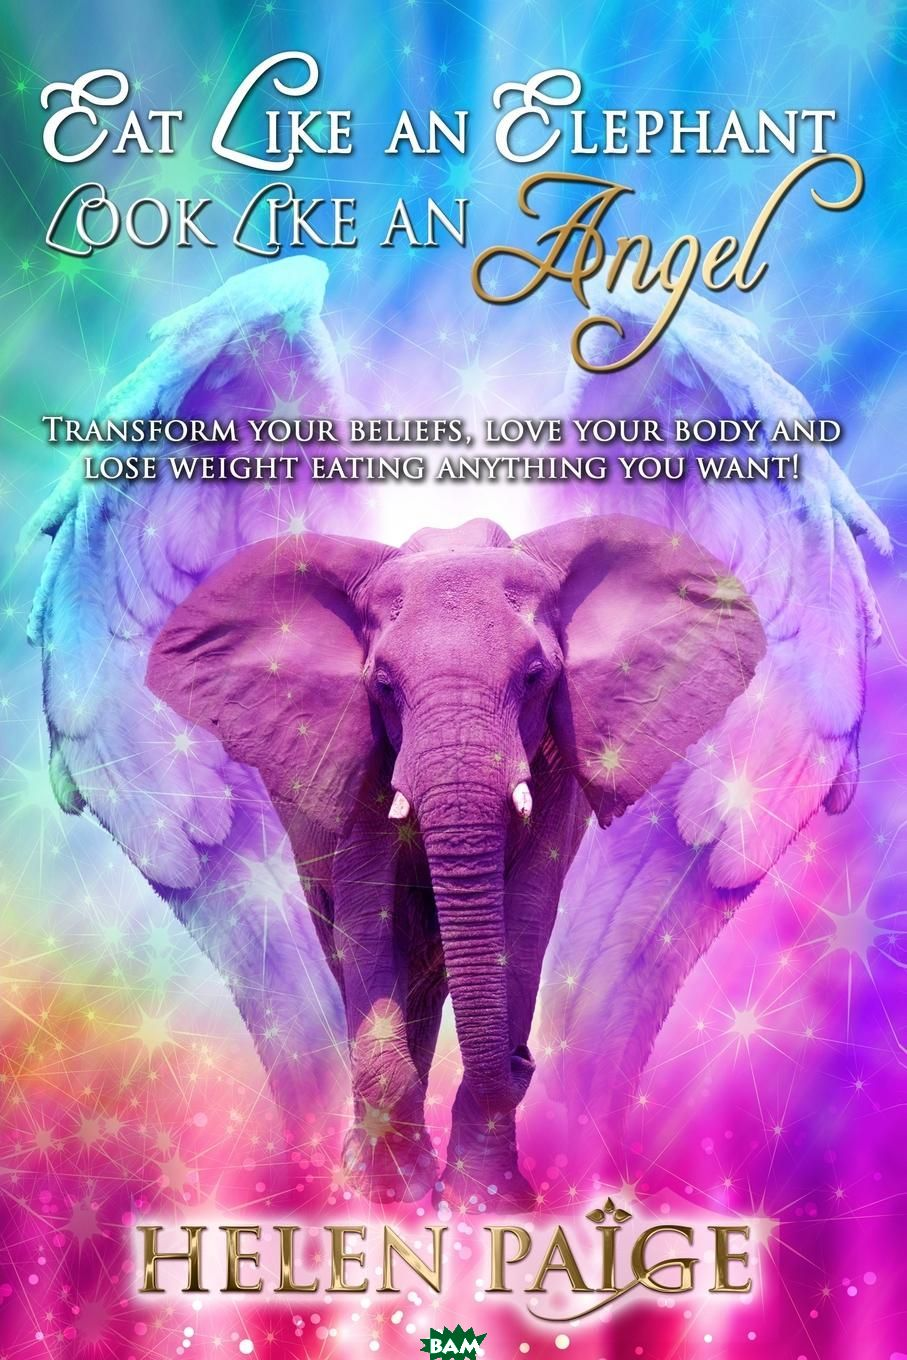 Купить EAT LIKE AN ELEPHANT LOOK LIKE AN ANGEL. Transform your beliefs, love your body and lose weight eating anything you want., Helen Paige, 9780980554229